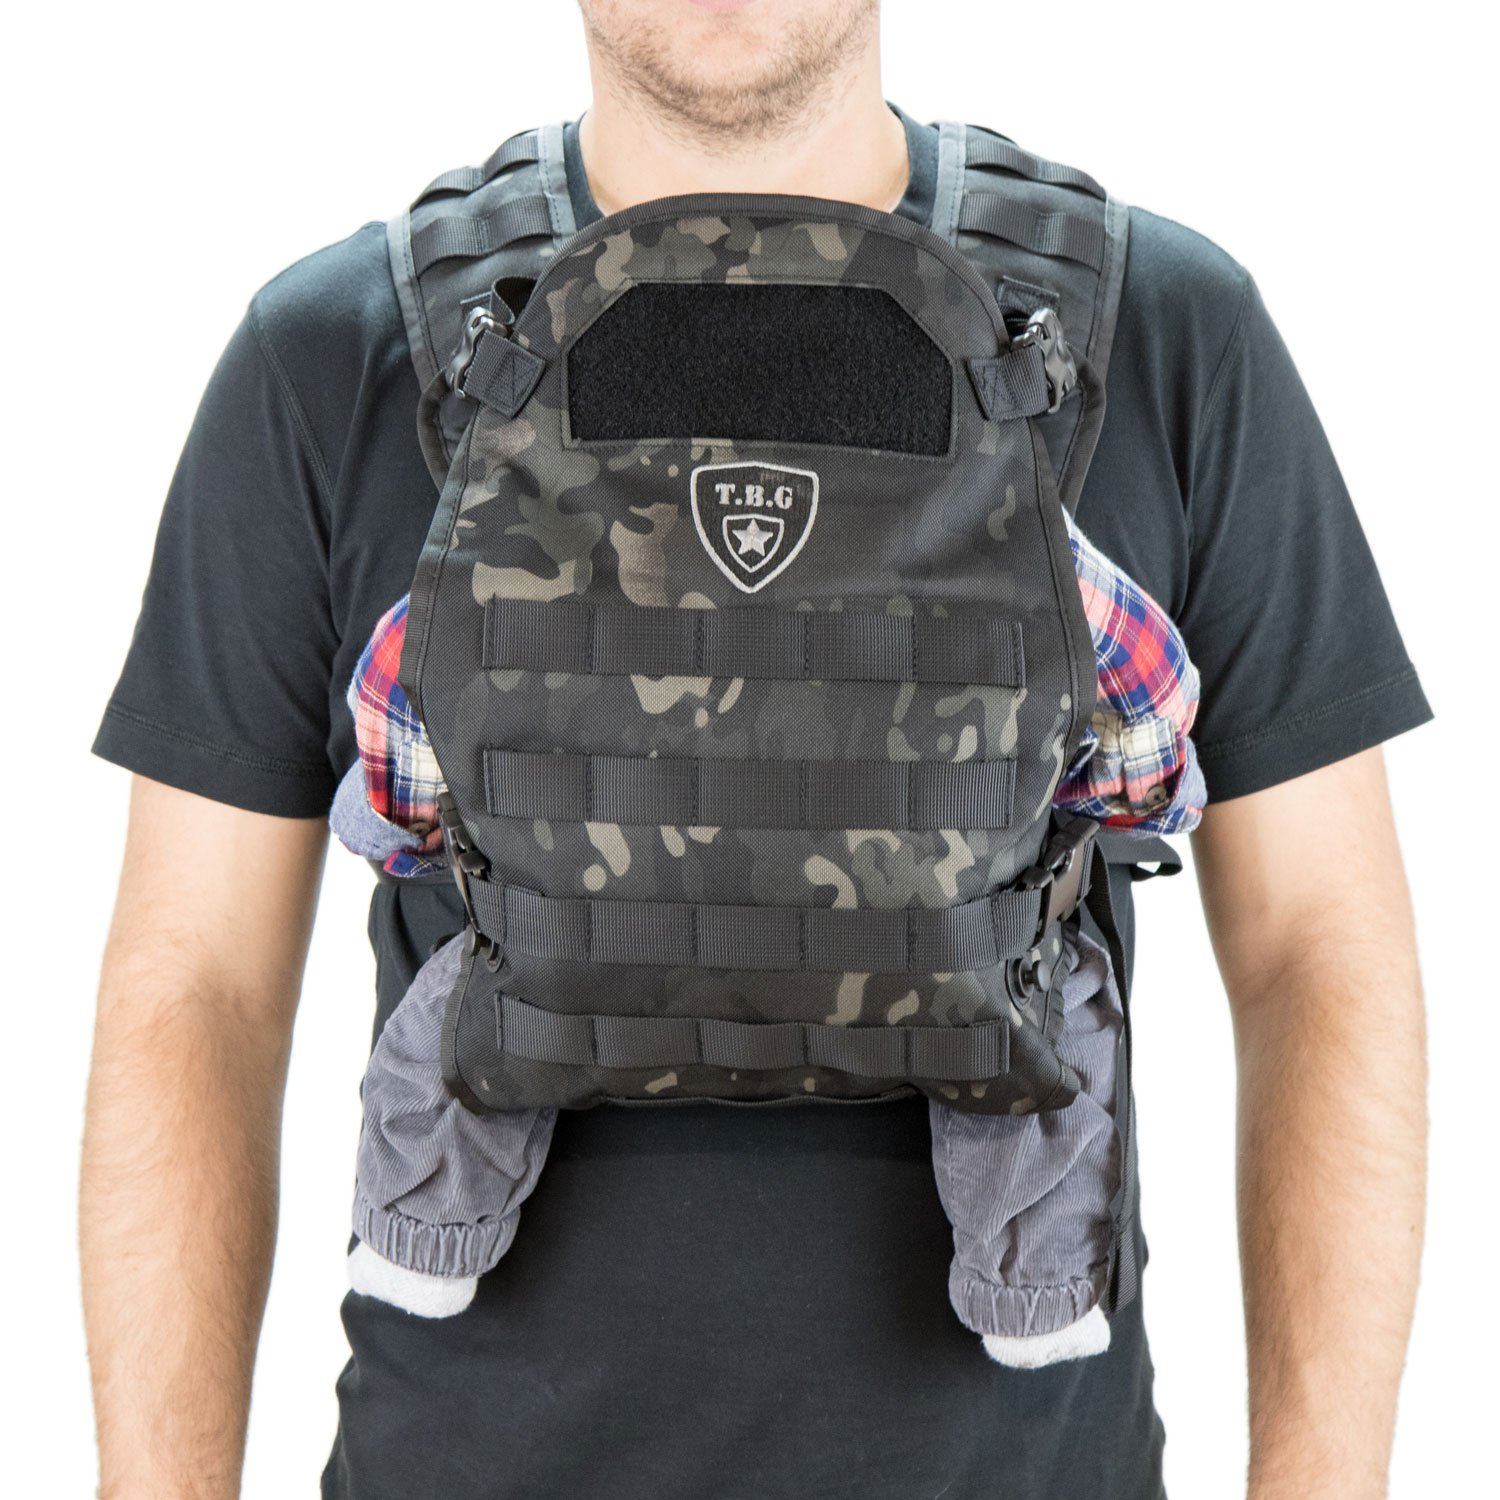 TBG Tactical Baby Carrier (Coyote Brown) Tactical Baby Gear